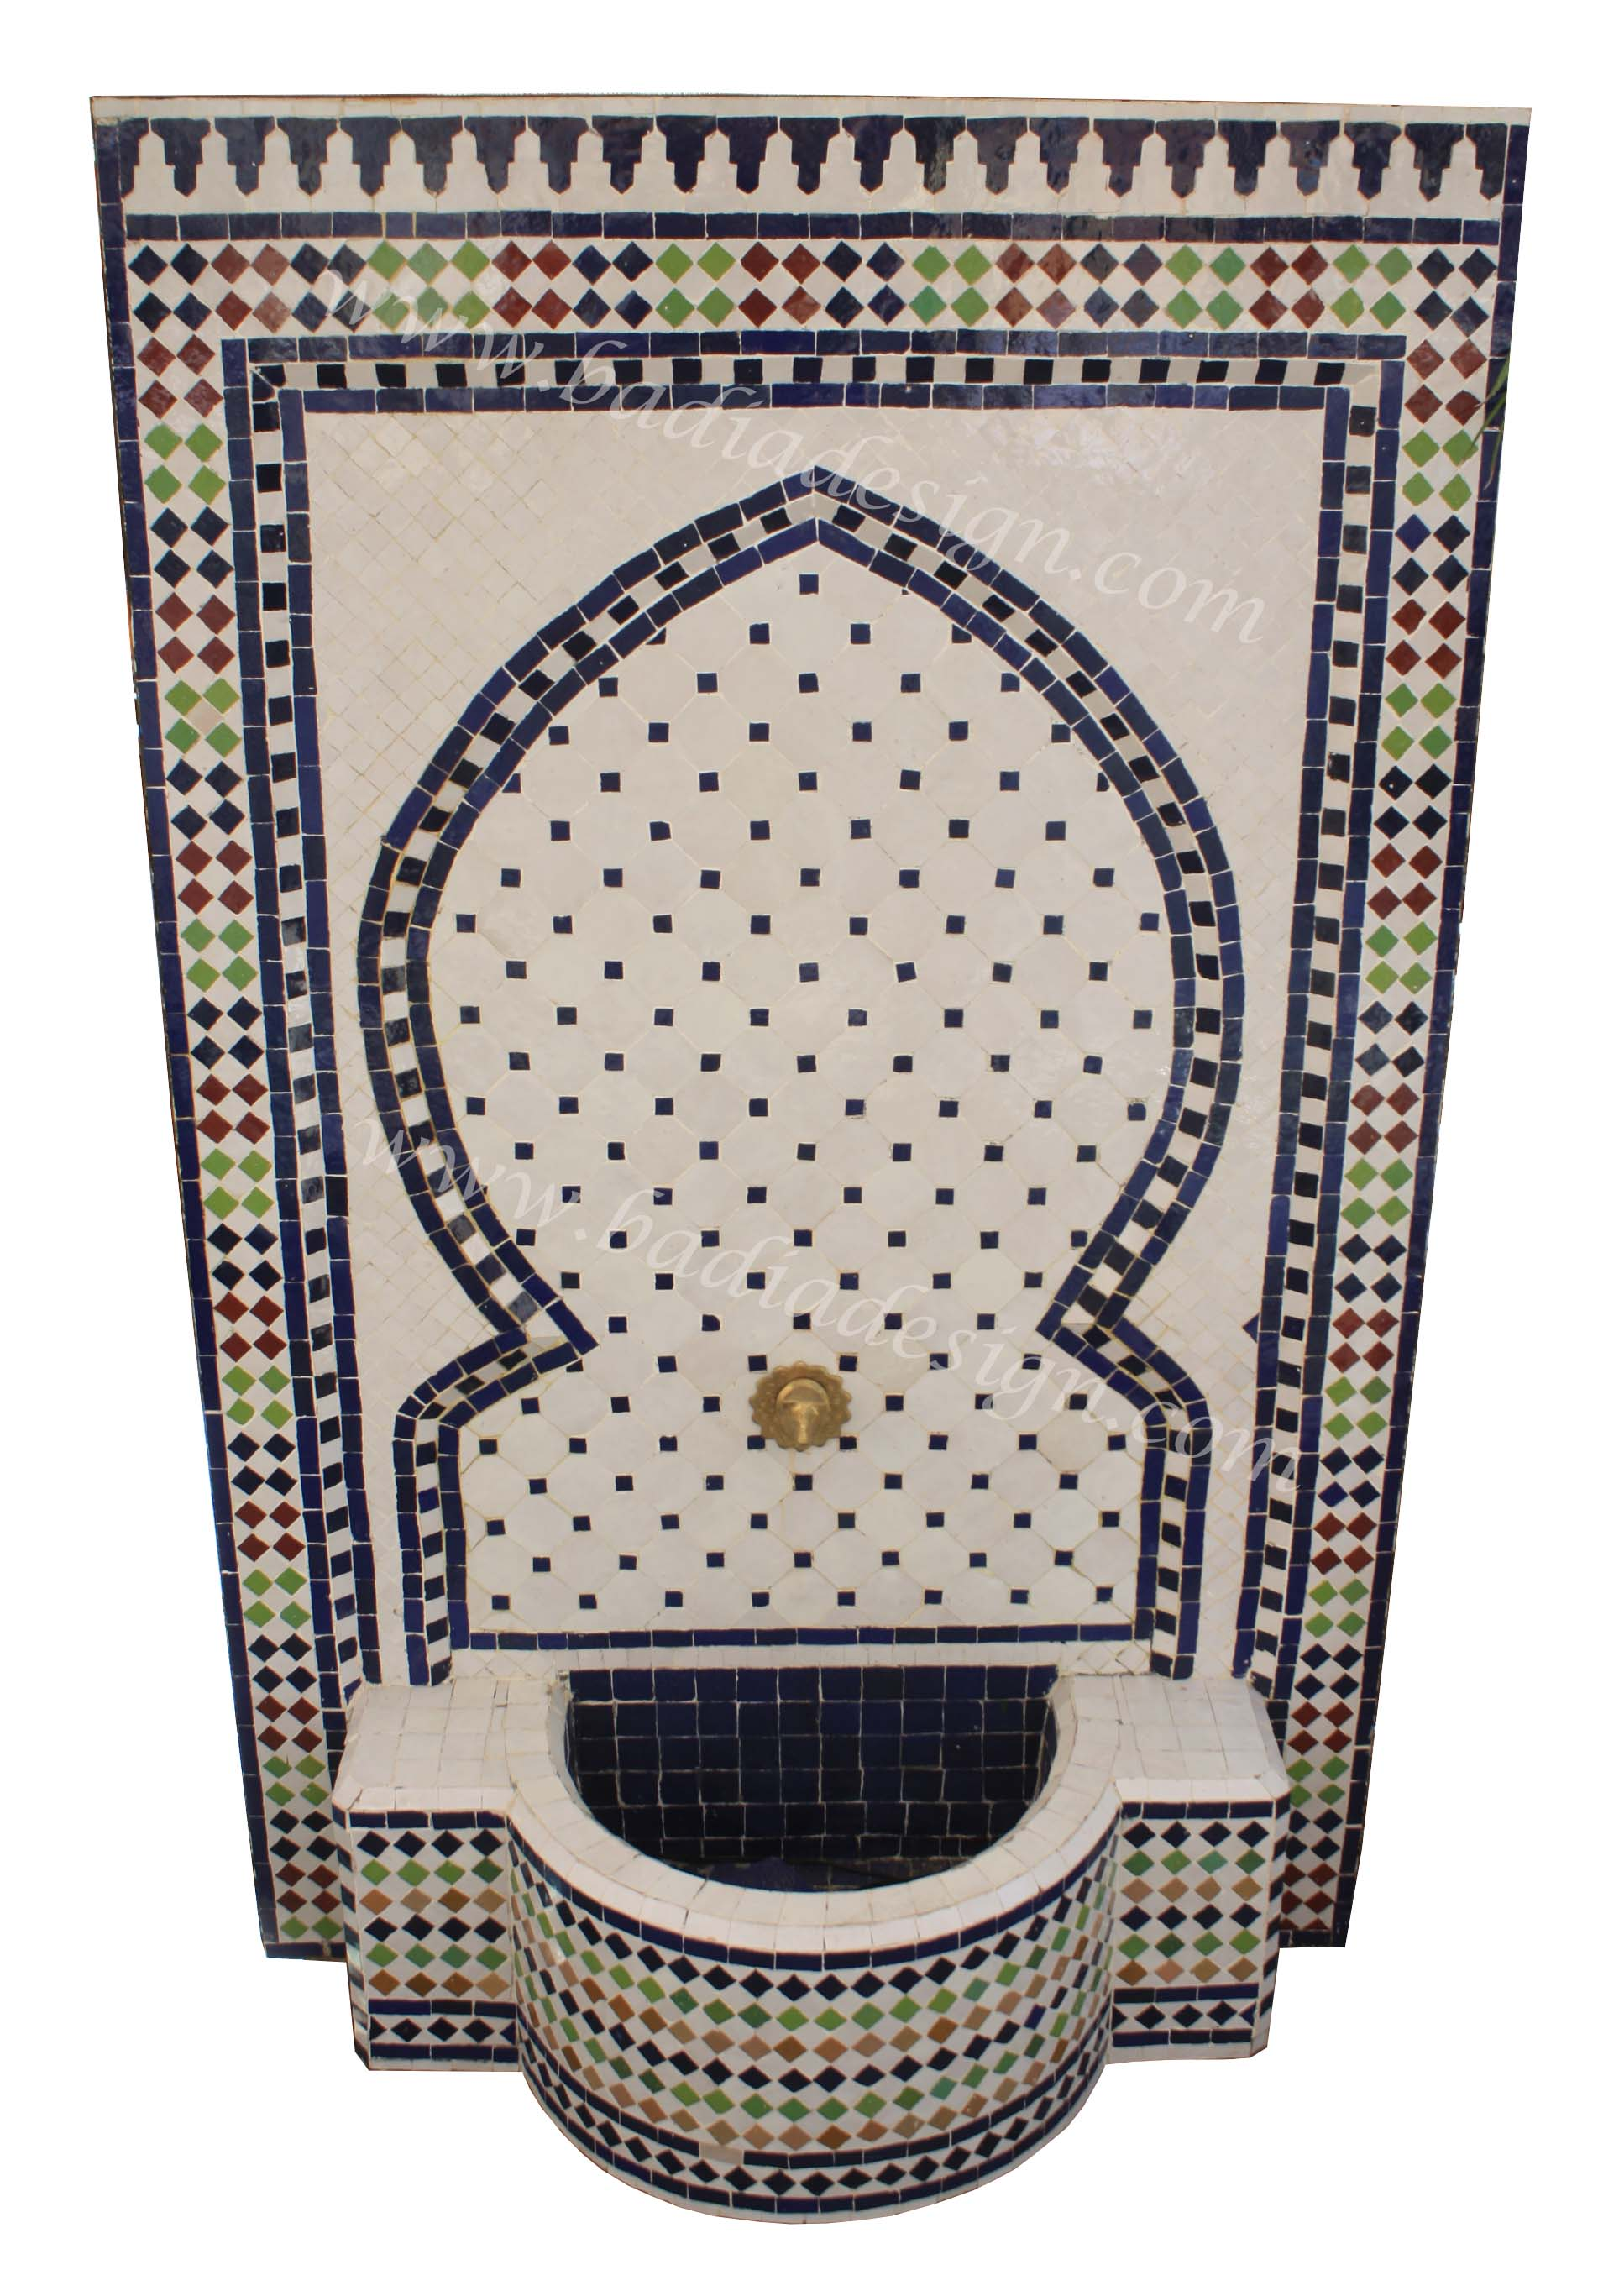 moroccan-style-water-fountain-mf642.jpg